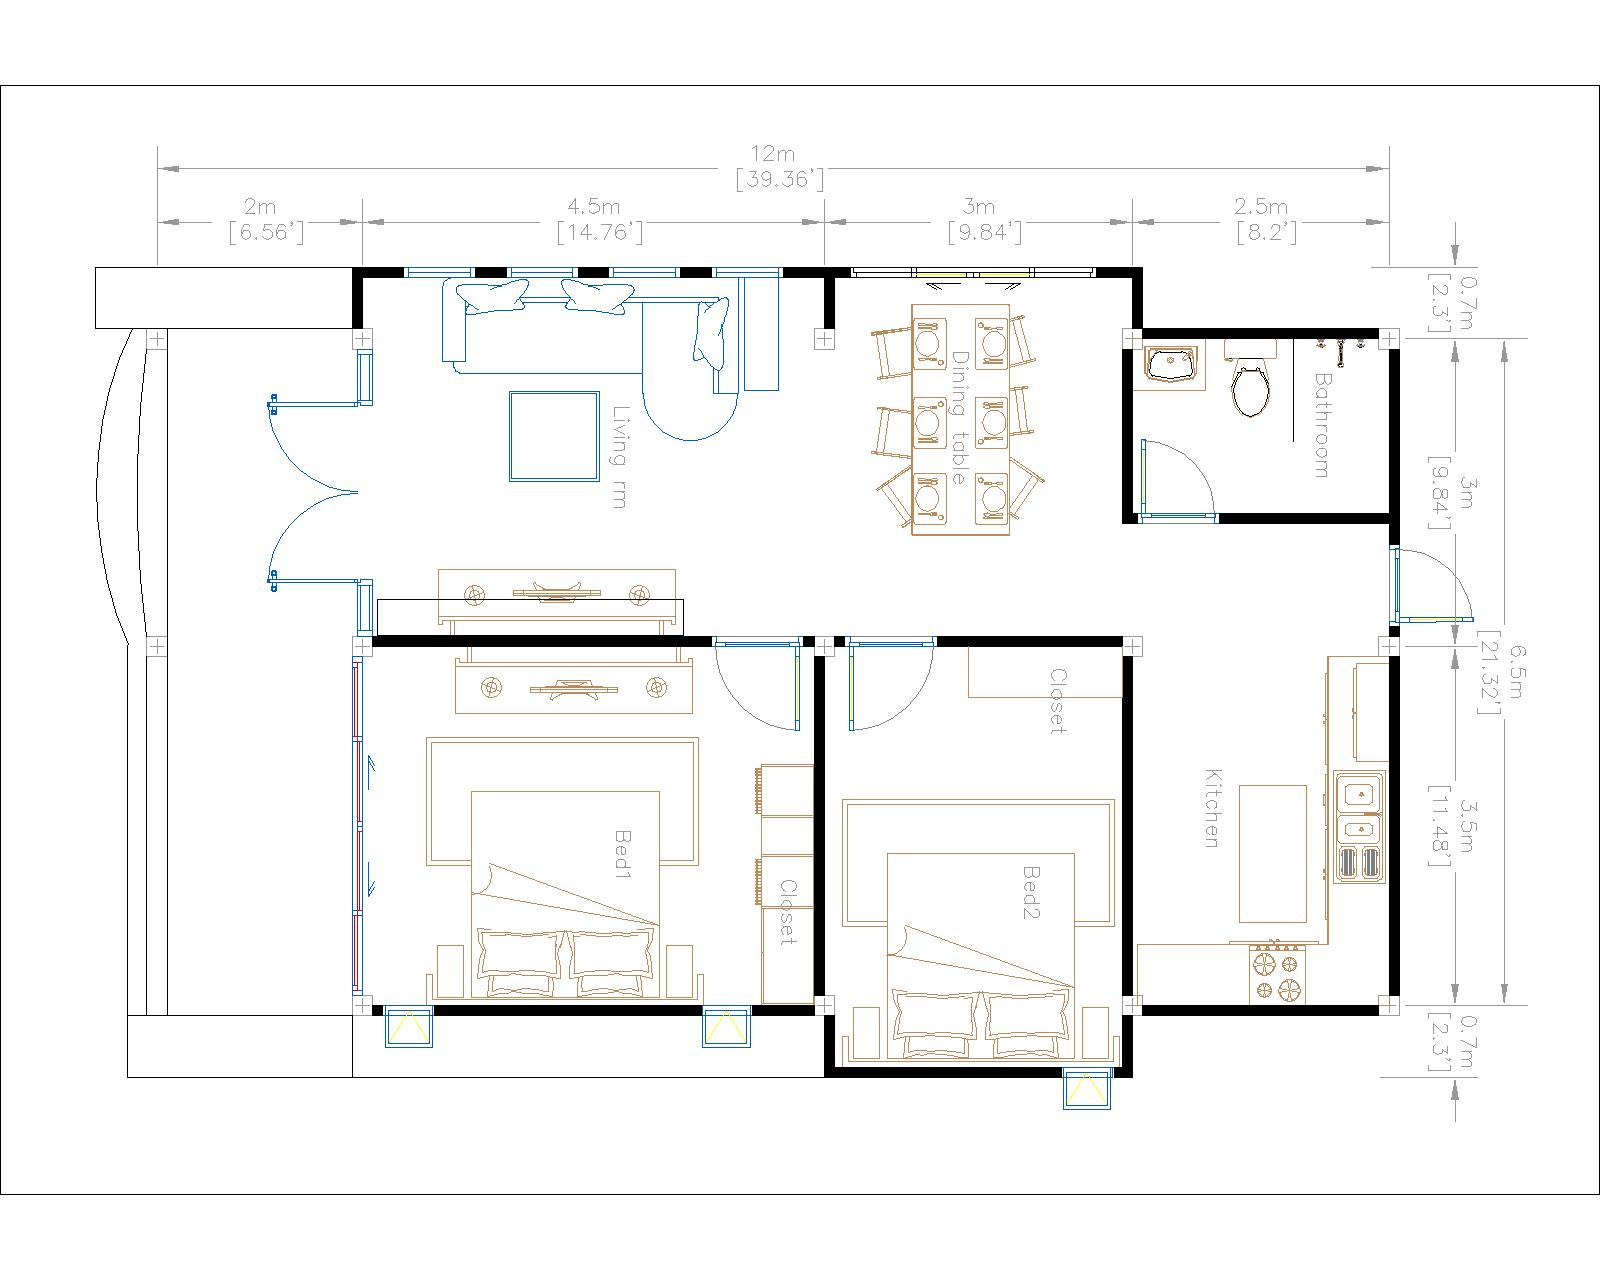 Cottage House Plans 8x12 Meter 26x40 Feet 2 Beds House layout floor plan